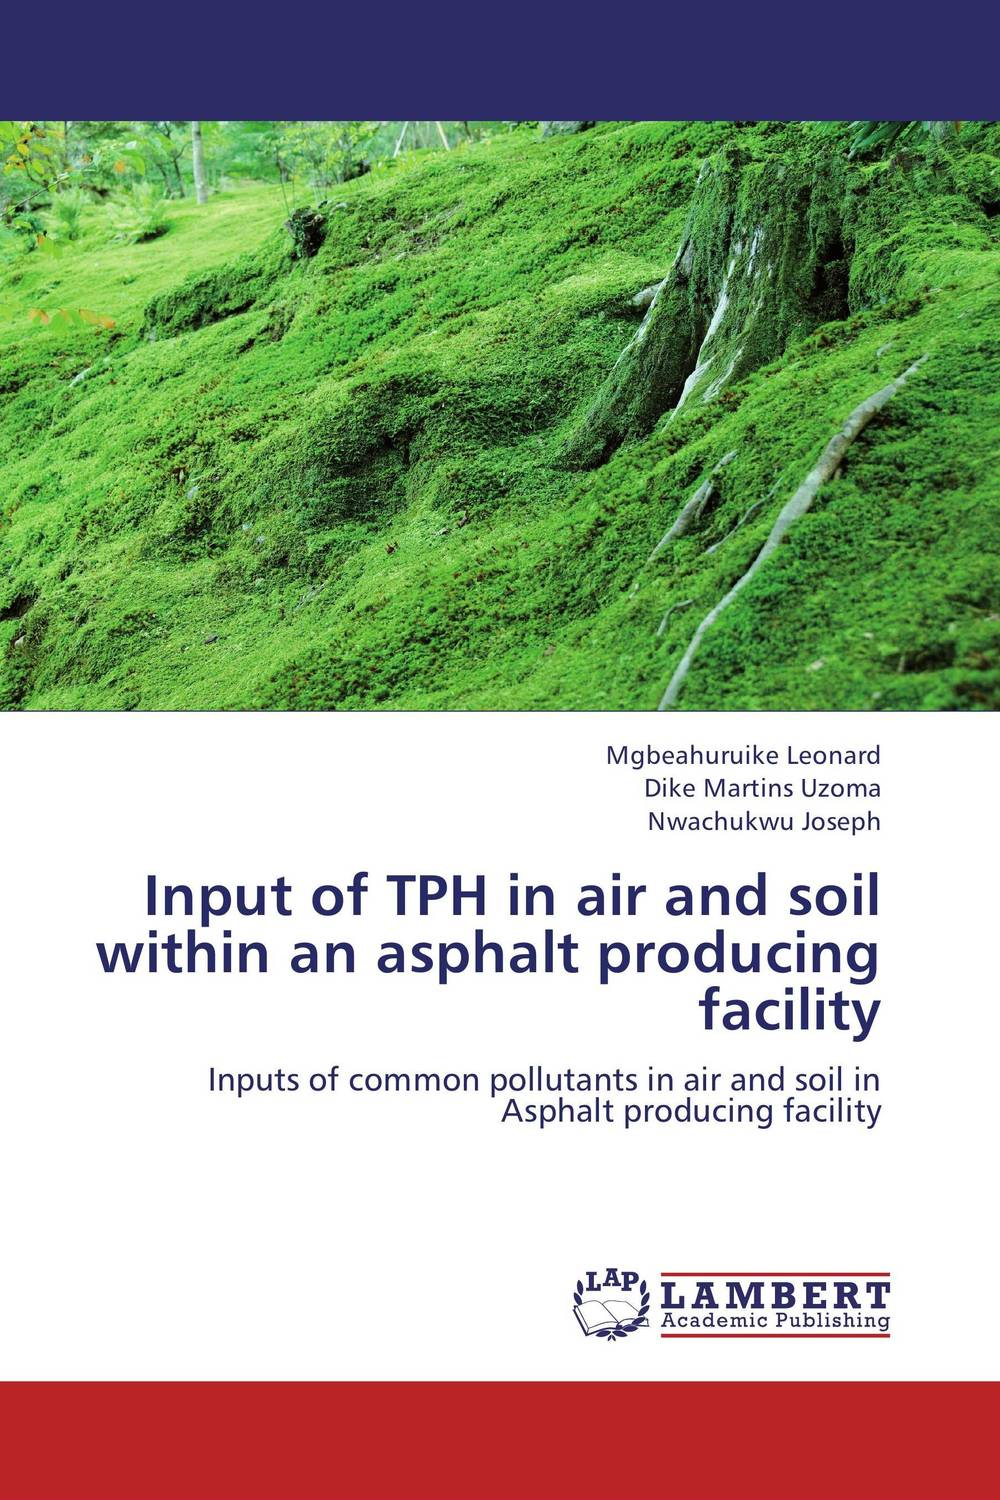 Input of TPH in air and soil within an asphalt producing facility sampling and analysis of environmental chemical pollutants a complete guide